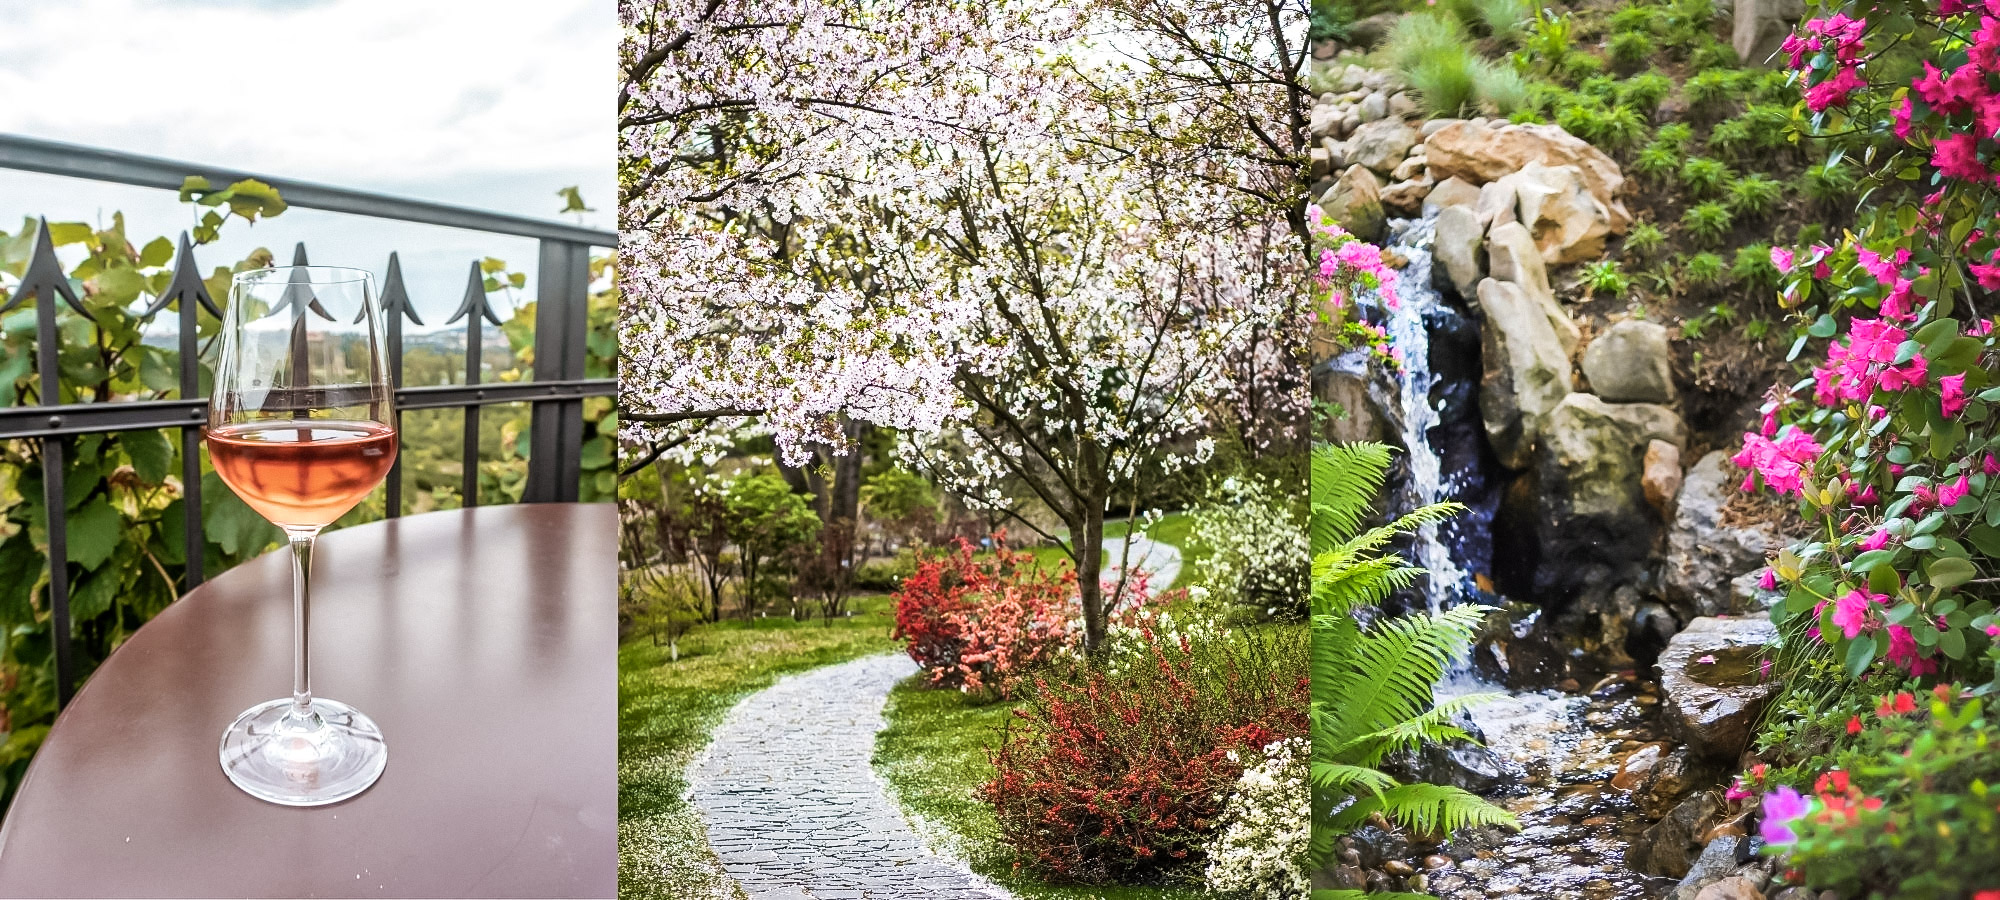 A wine glass on a table, cherry blossom trees and a mini waterfall in Prague